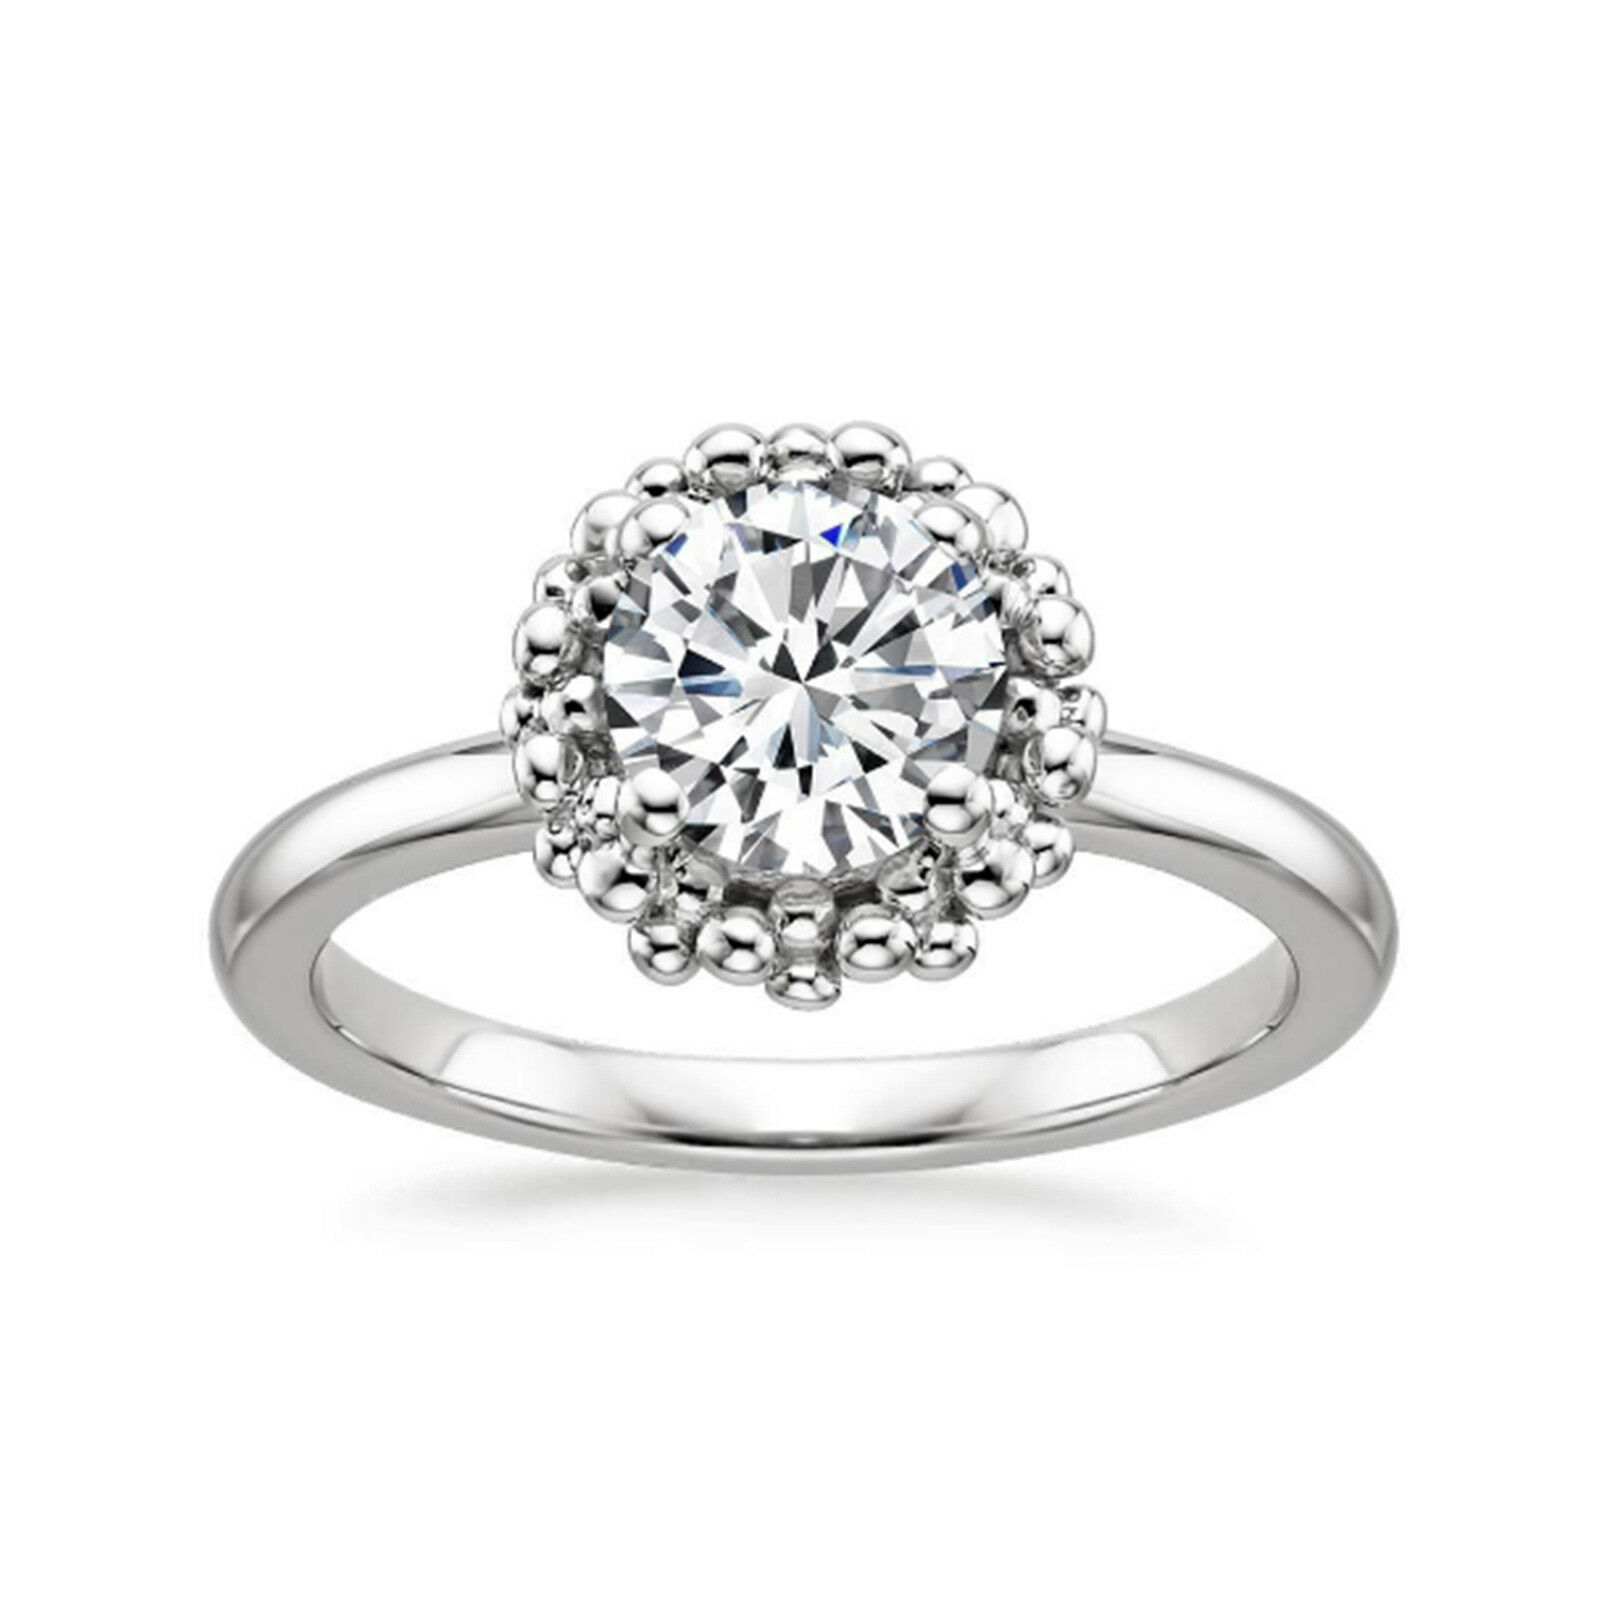 1.00 Ct Round Cut Moissanite Engagement Wedding Ring 14K Solid White gold Size 6